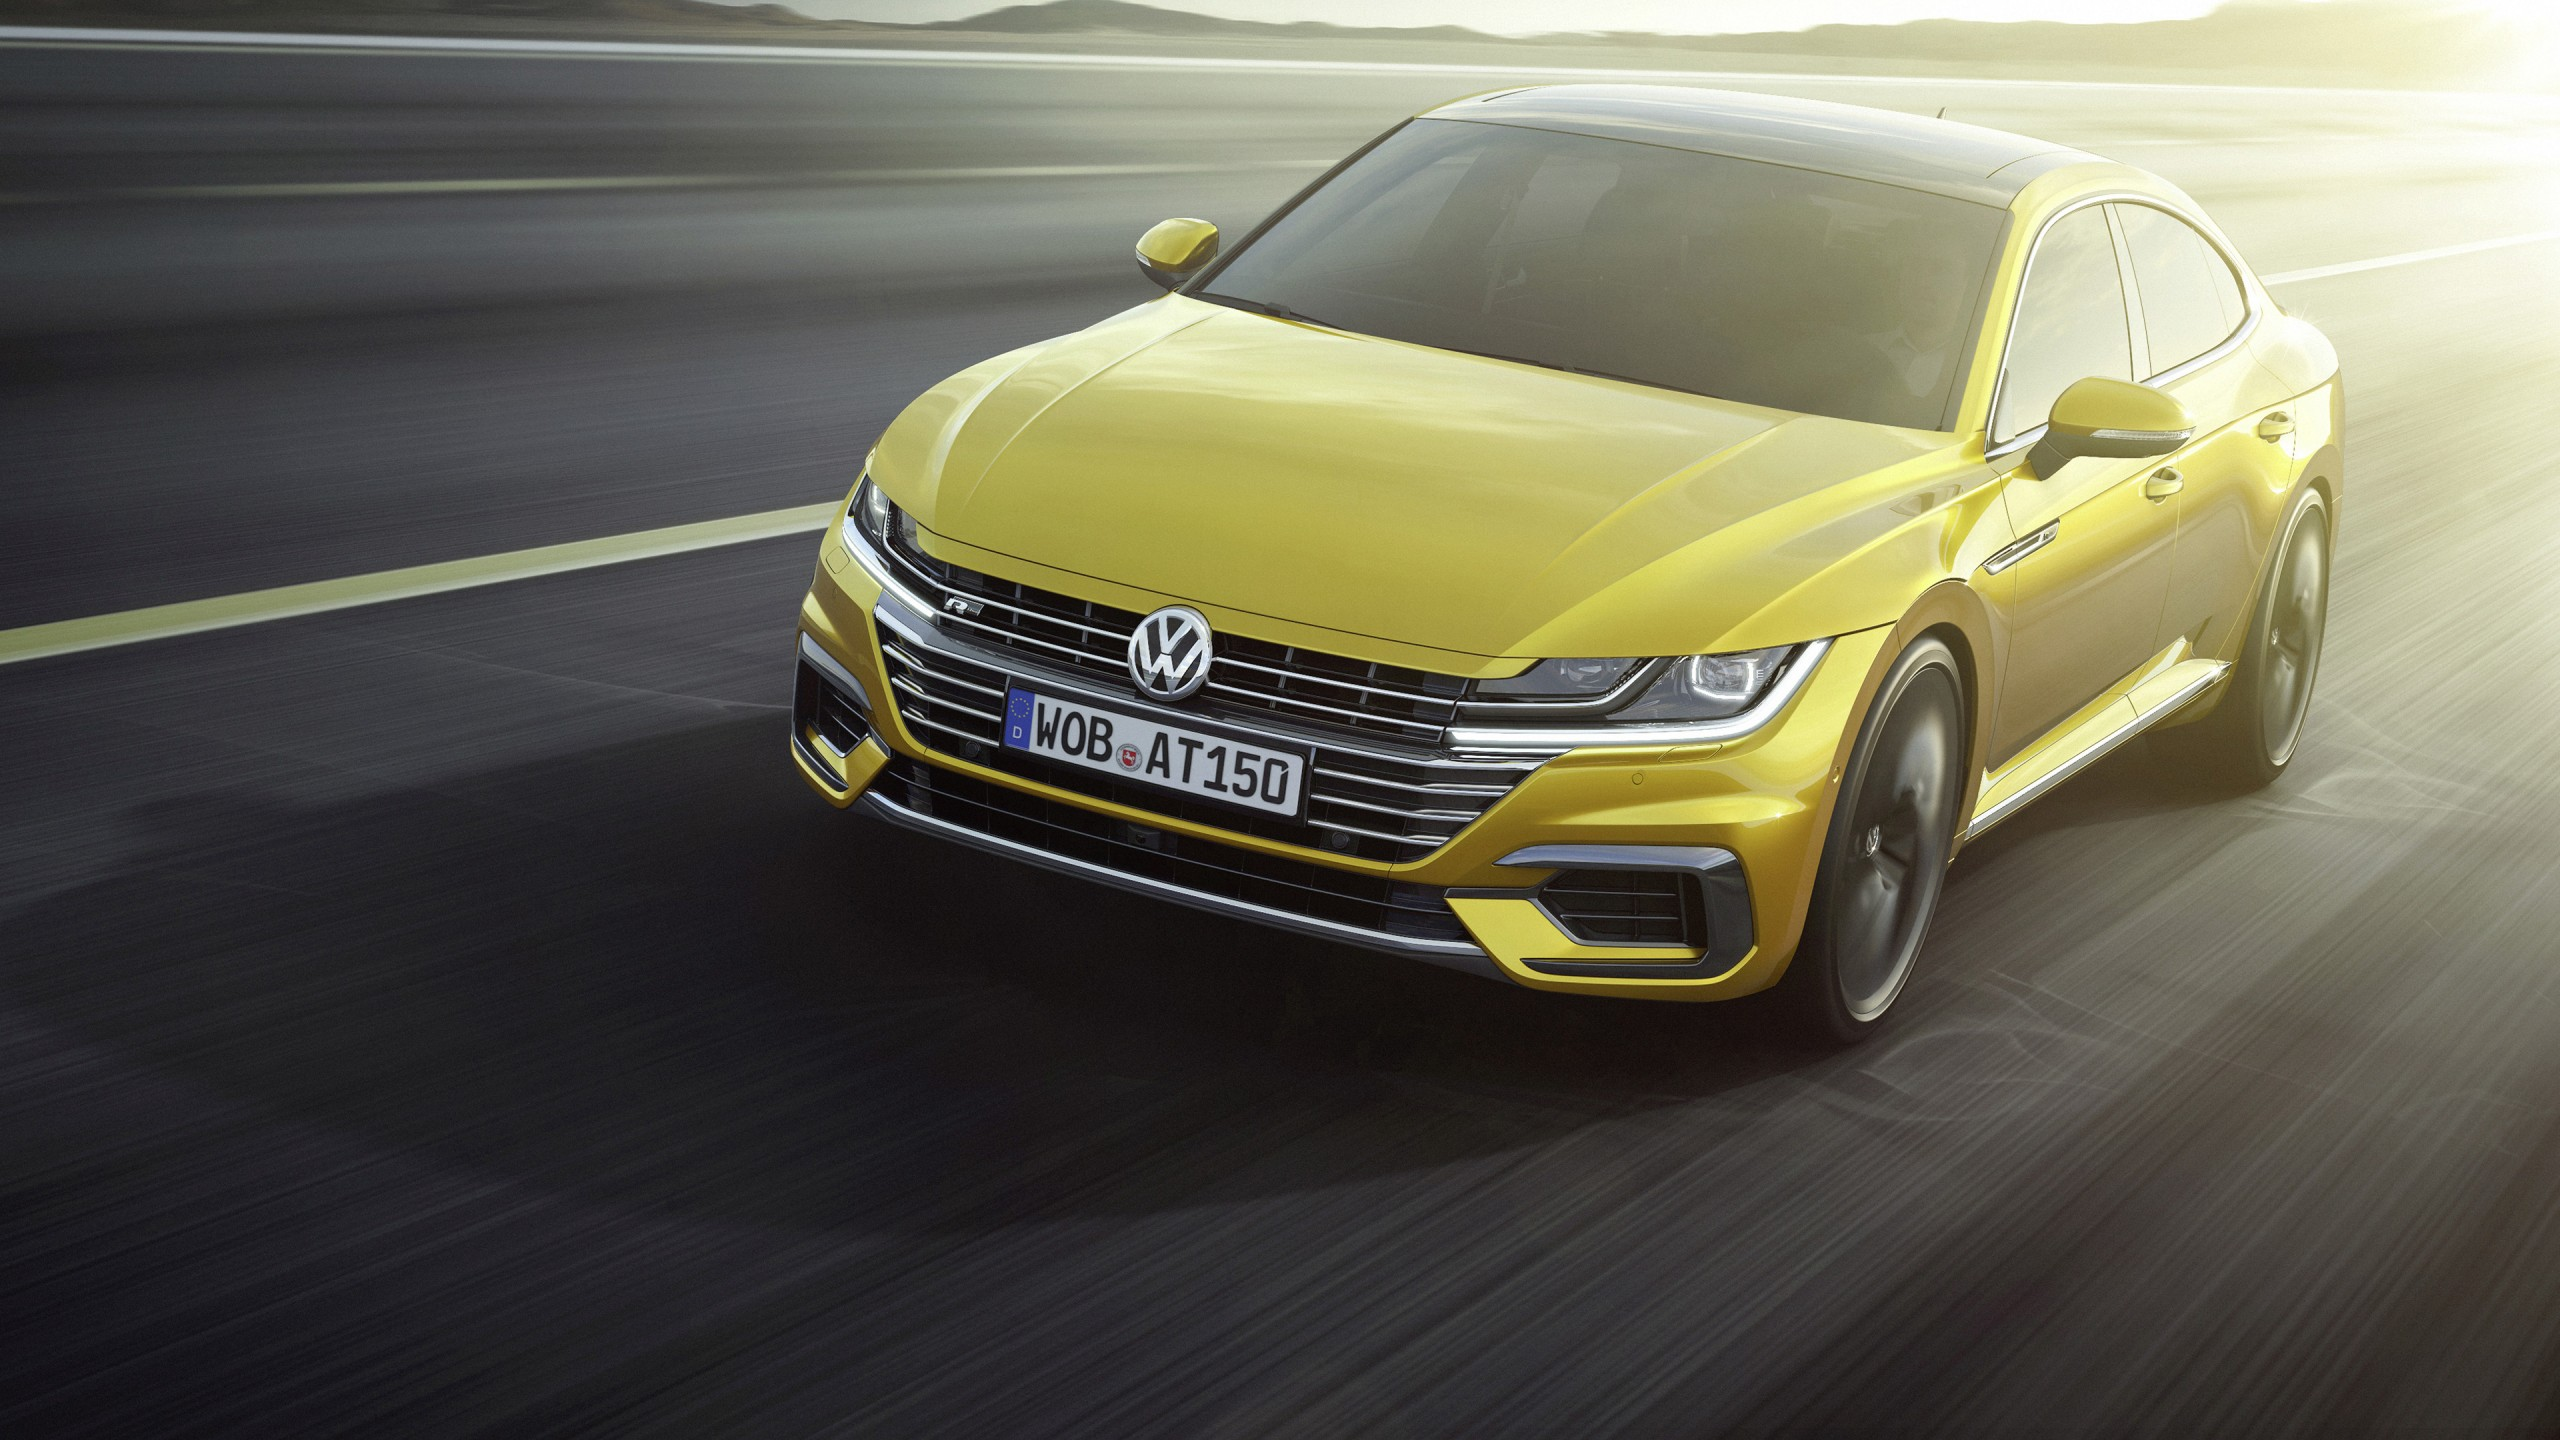 2017 volkswagen arteon r line 4k wallpaper hd car wallpapers id 7503. Black Bedroom Furniture Sets. Home Design Ideas